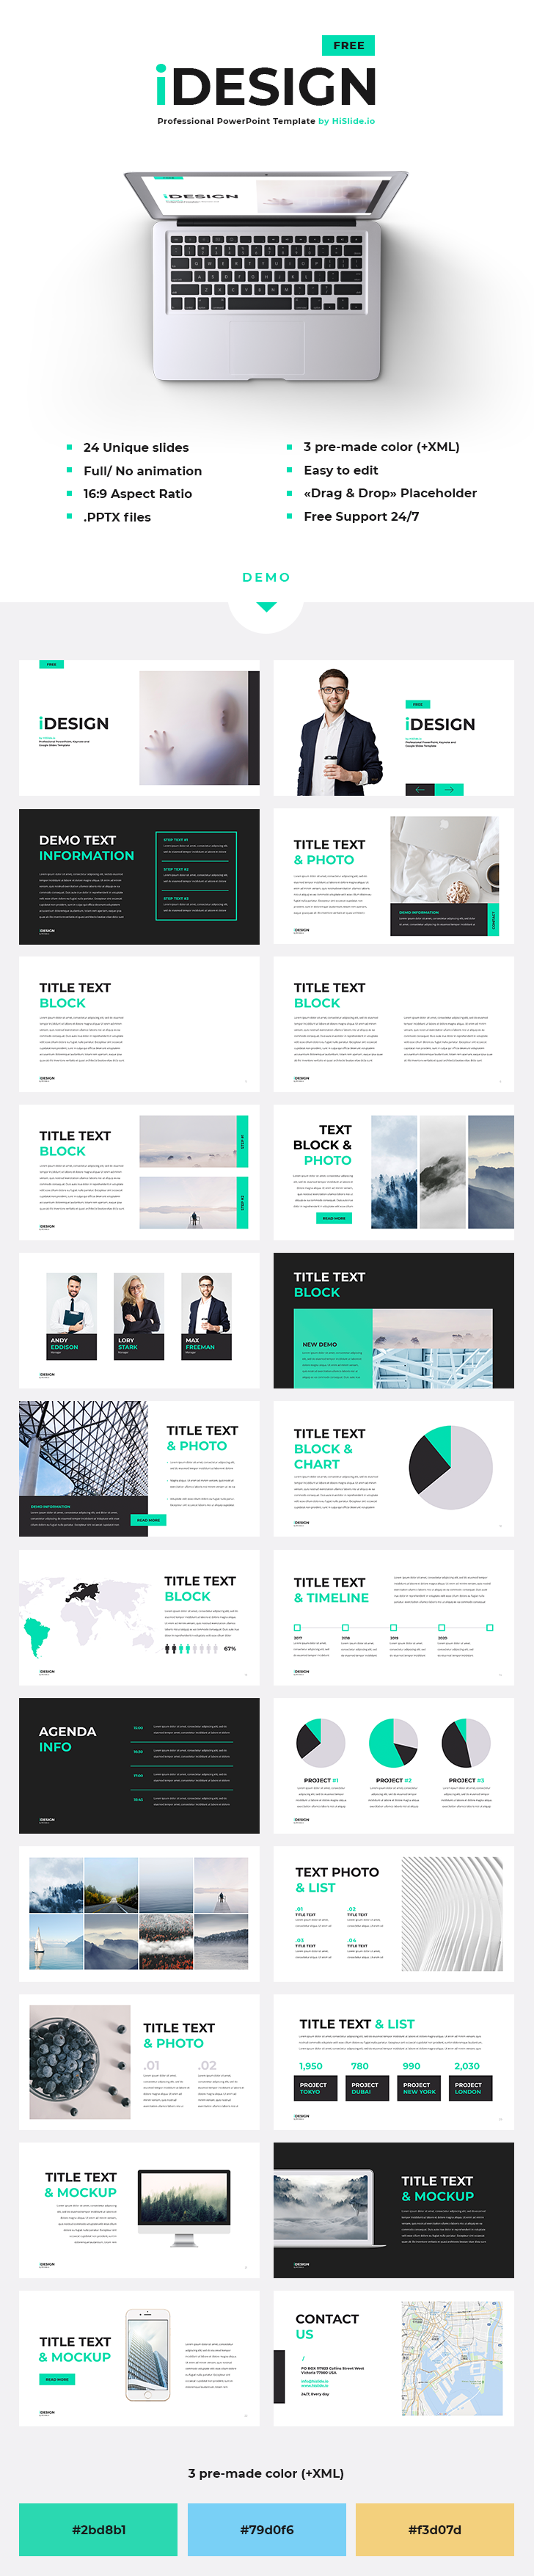 Idesign free powerpoint template 24 unique slides 3 pre made idesign free powerpoint template 24 unique slides 3 pre made color xml files full no animation easy to edit drag drop placeholder toneelgroepblik Images